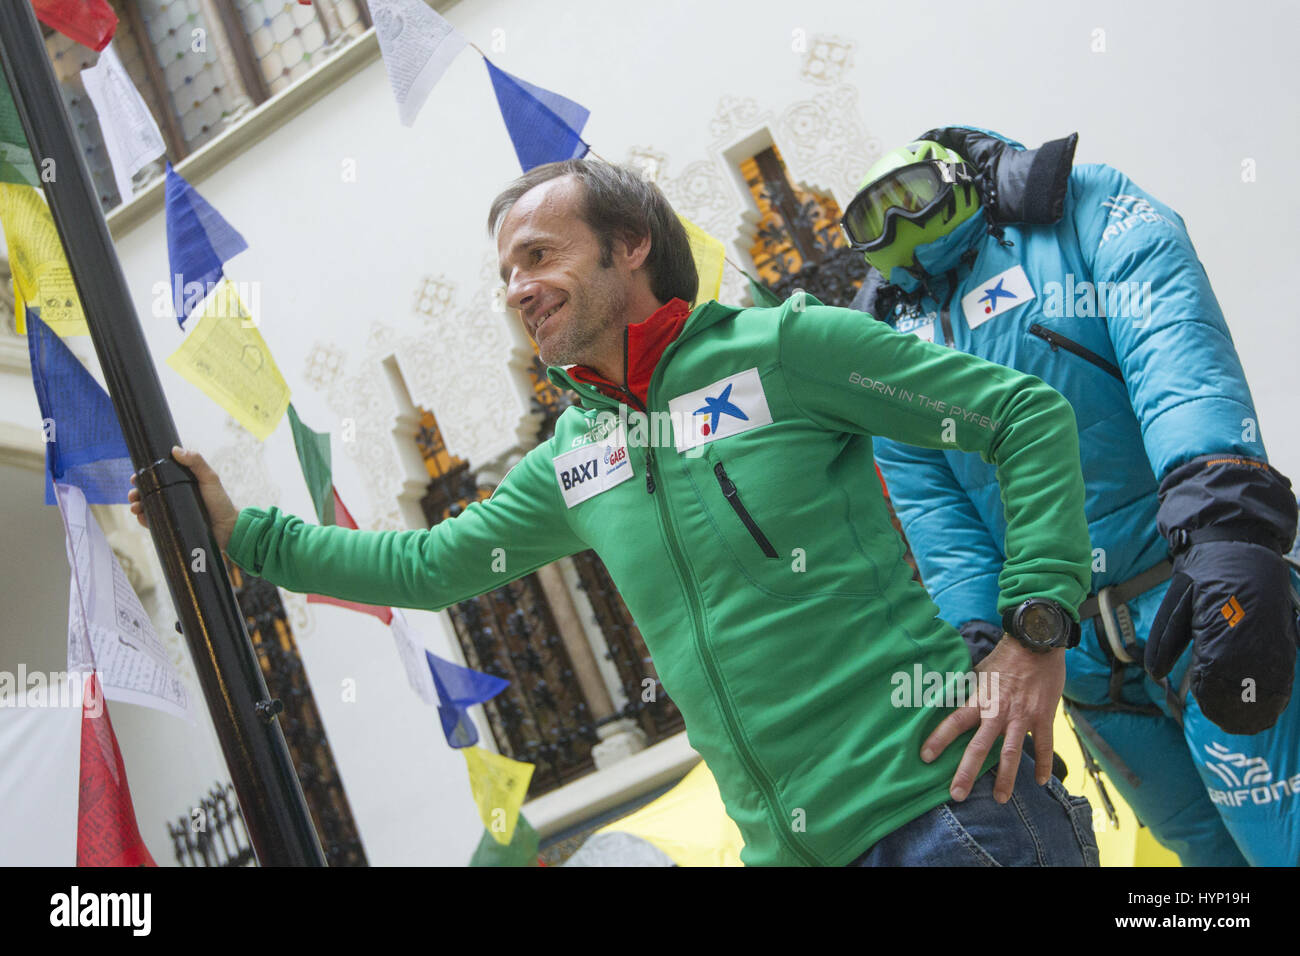 Spanish alpinist Ferran Latorre poses during the presentation of his next ascent to the Mount Everest, in Barcelona, - Stock Image